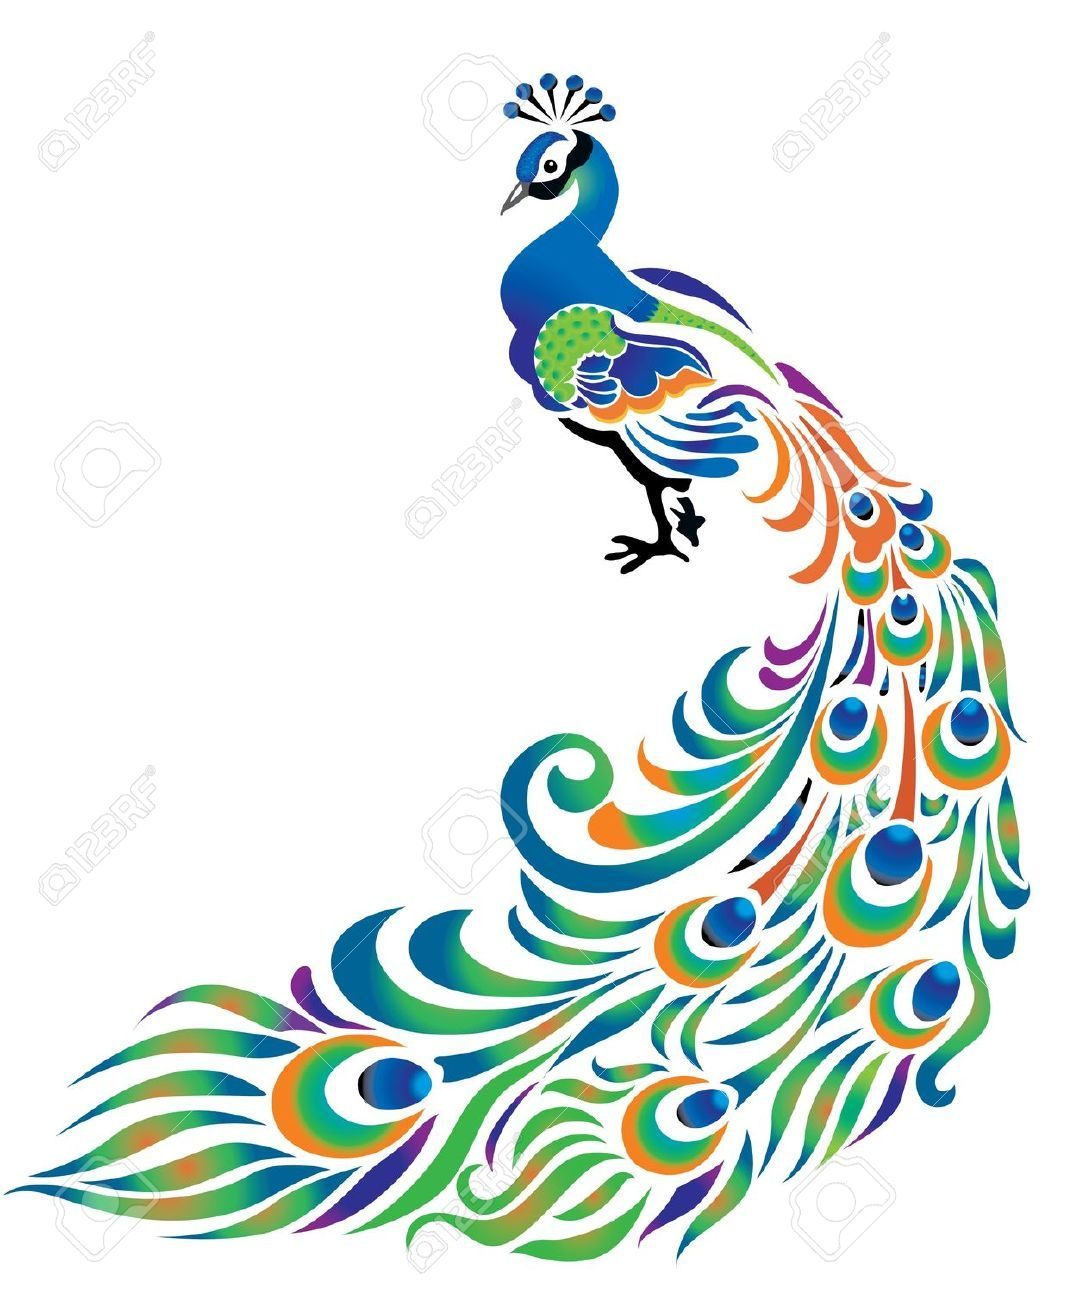 free peacock clipart 1 peacock costume pinterest peacocks rh pinterest com Peacock Meaning peacock feather clipart free